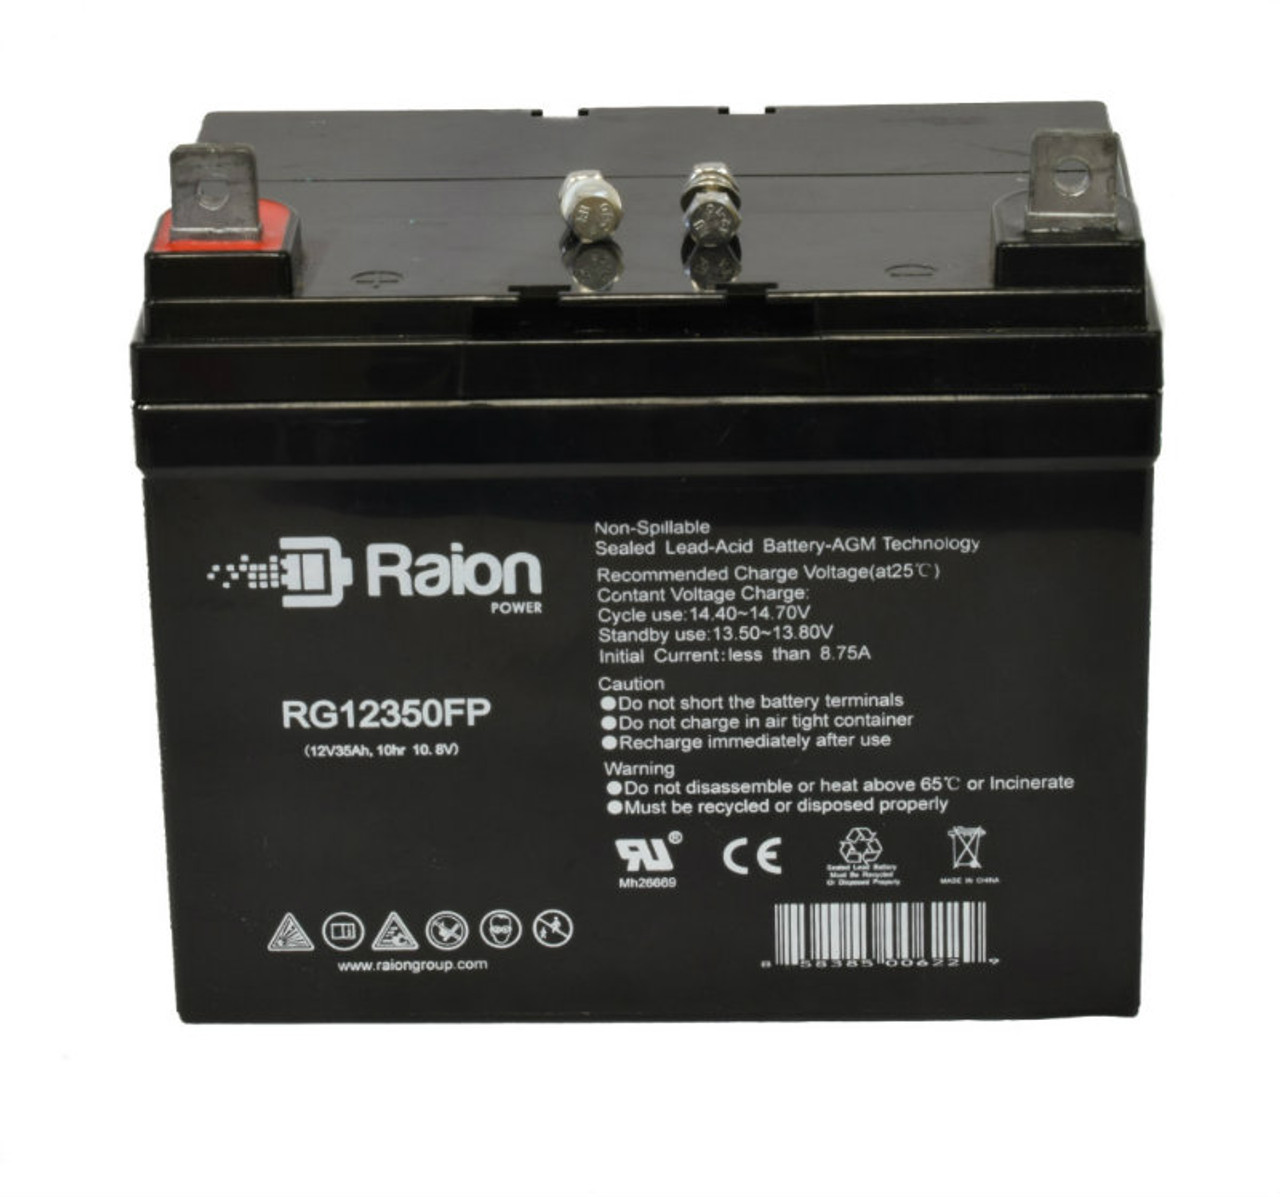 RG12350FP Sealed Lead Acid Battery Pack For Ranger All Seasons 2X3 Mobility Scooter